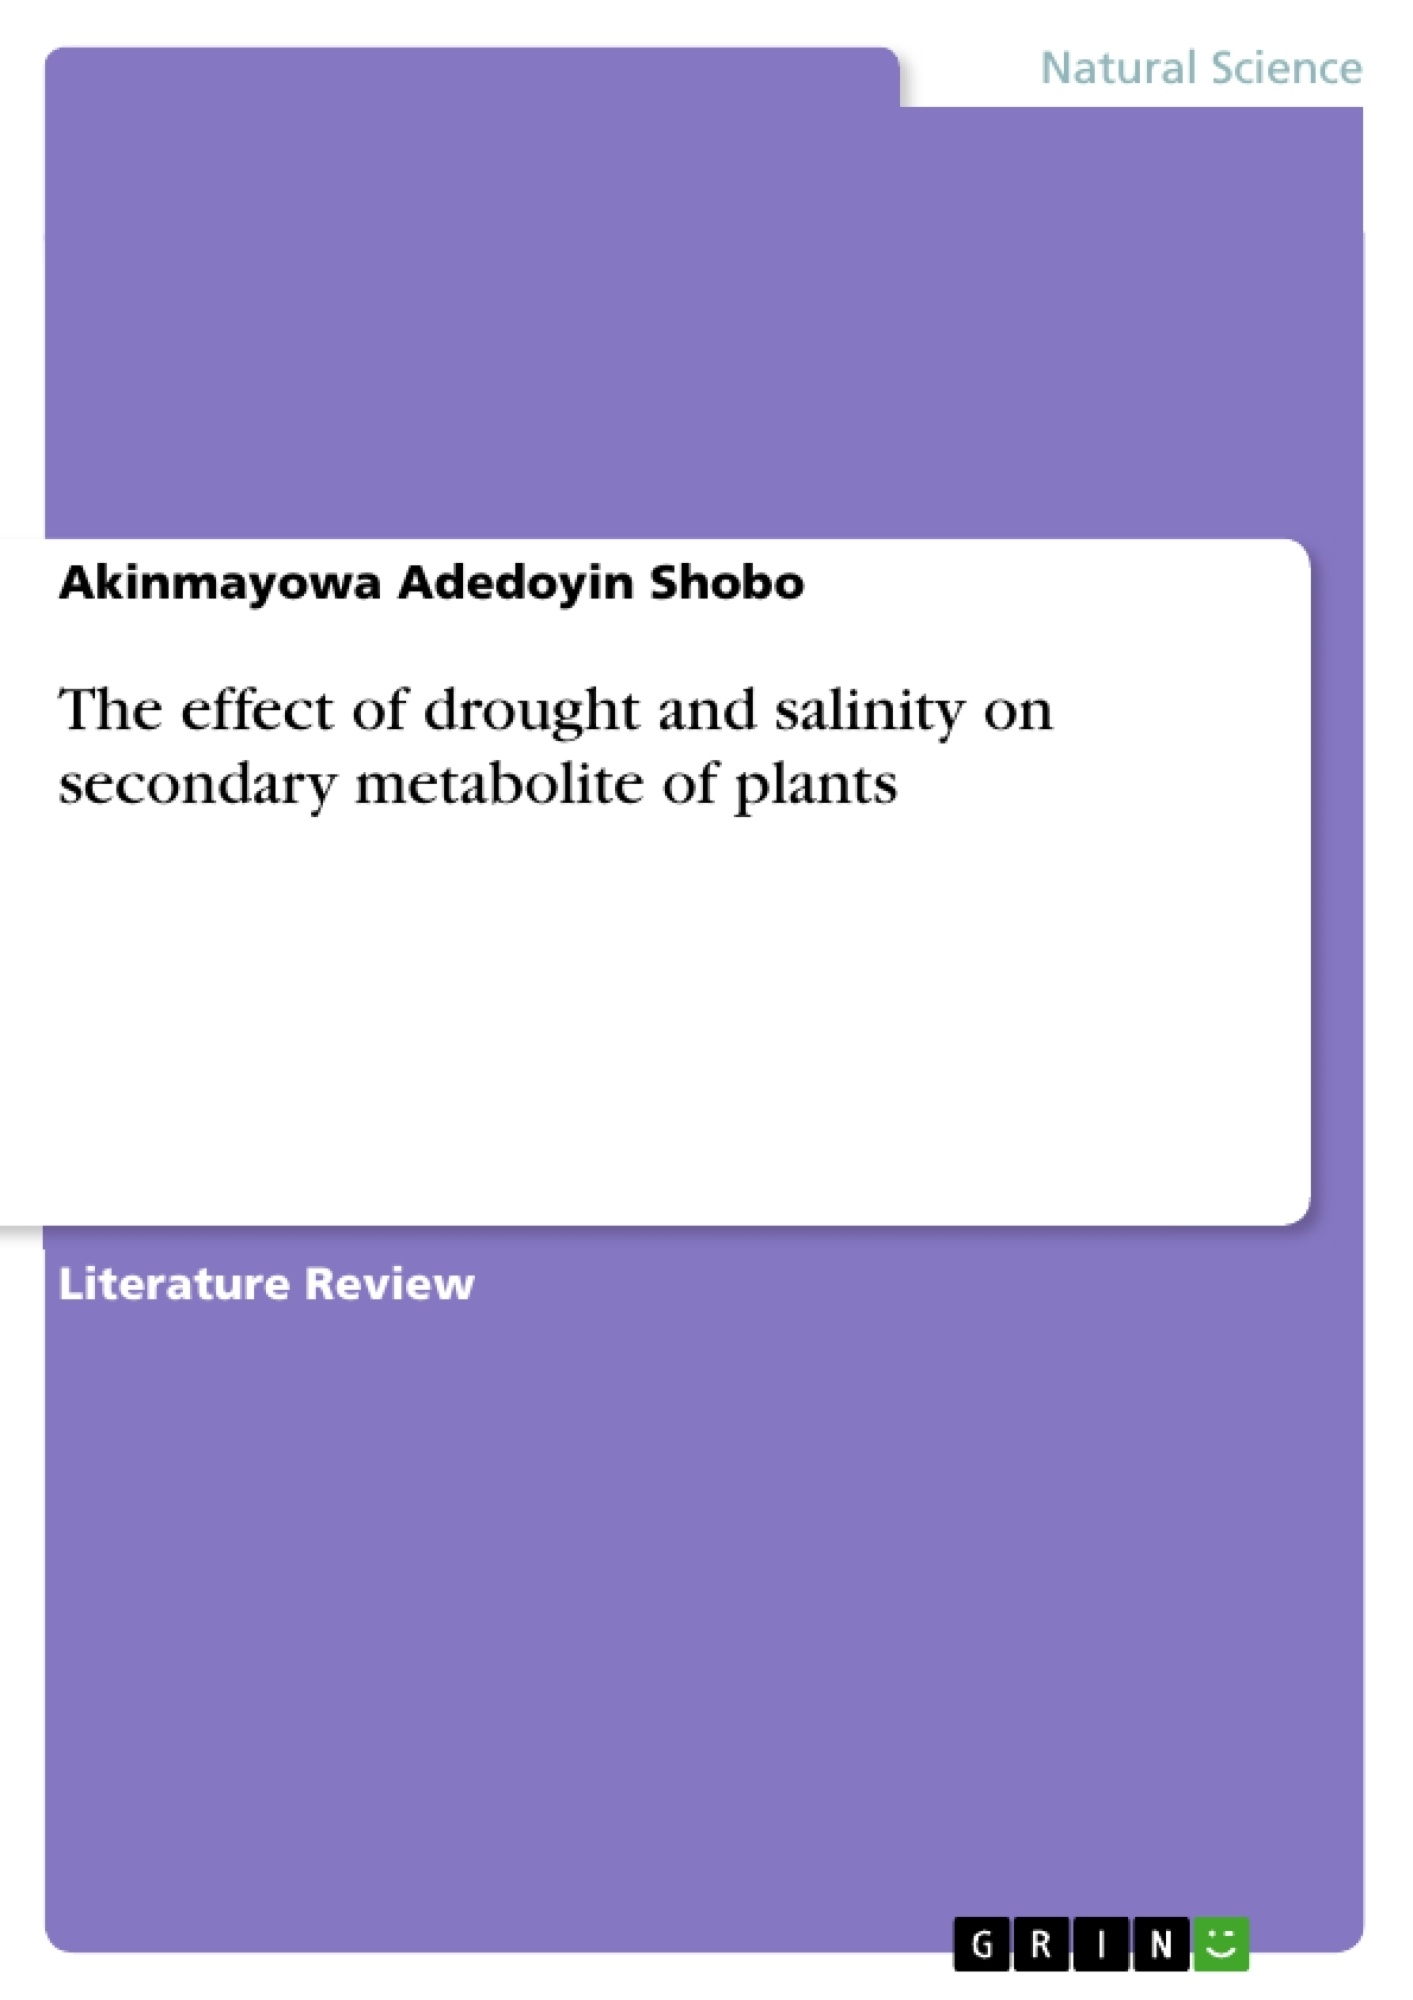 Title: The effect of drought and salinity on secondary metabolite of plants